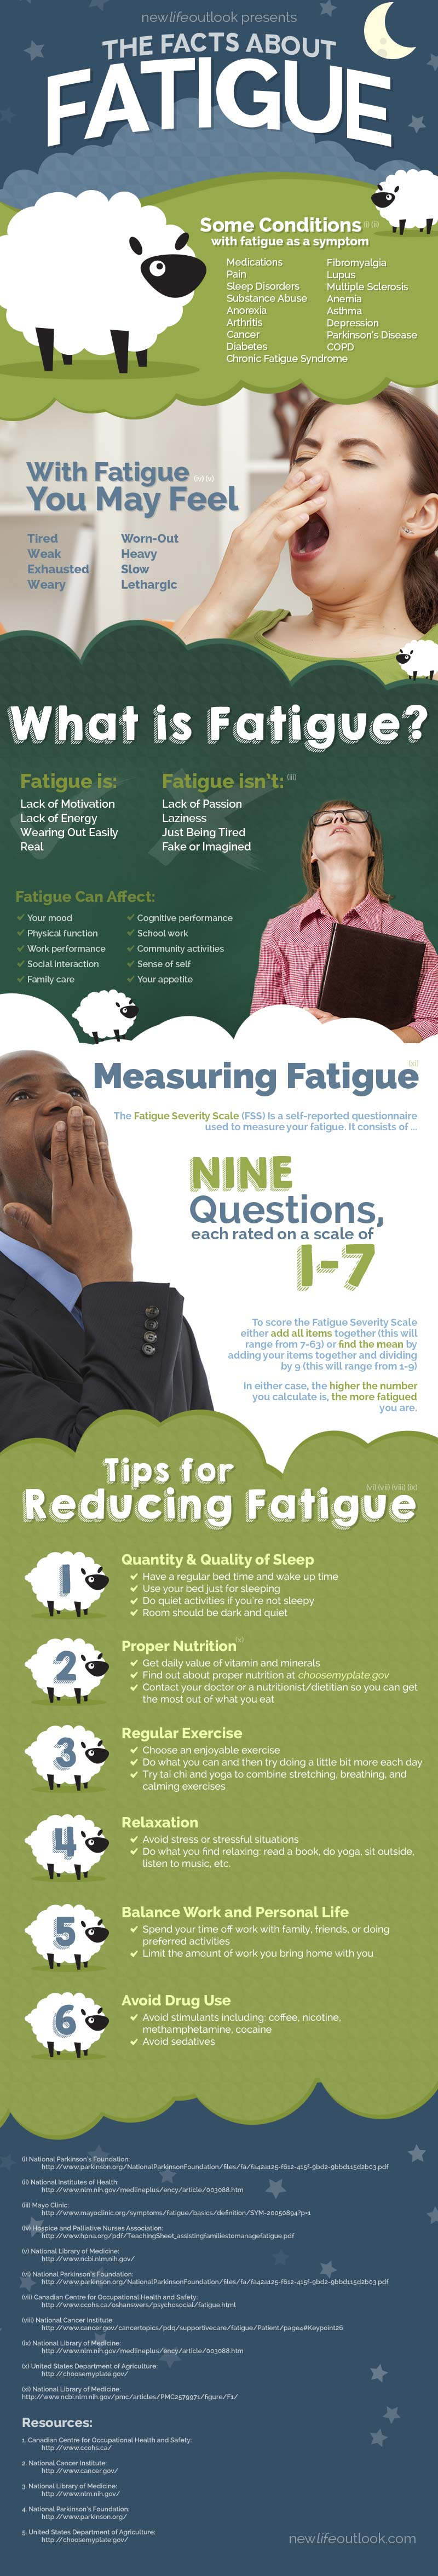 The Facts About Fatigue